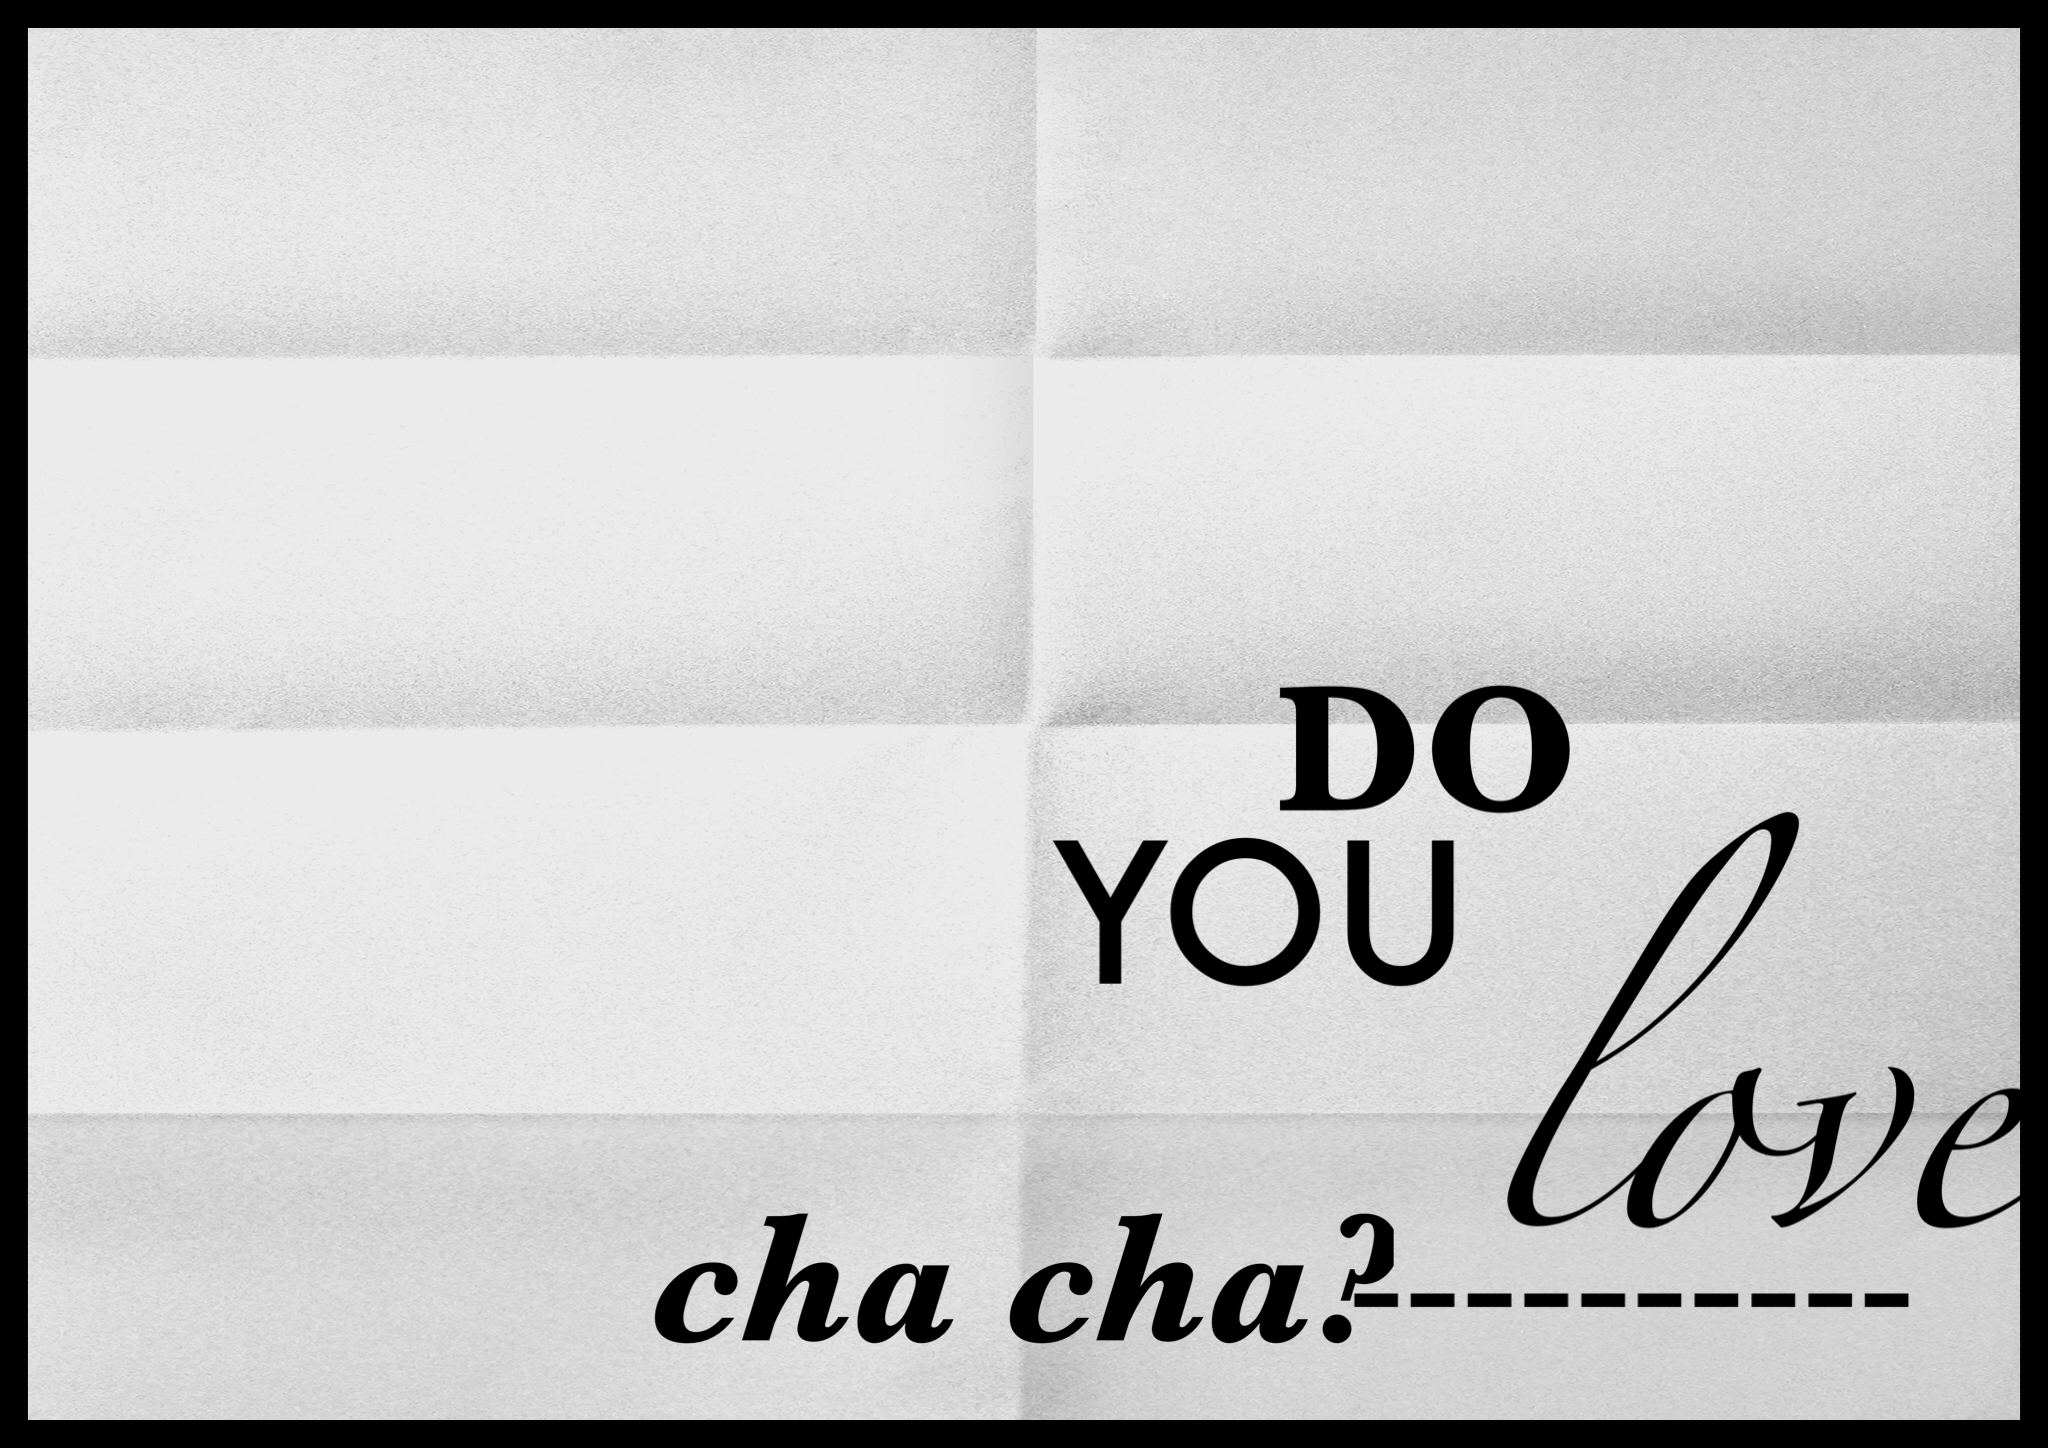 Colorado Cha Cha Lessons. Come out and dance Denver.